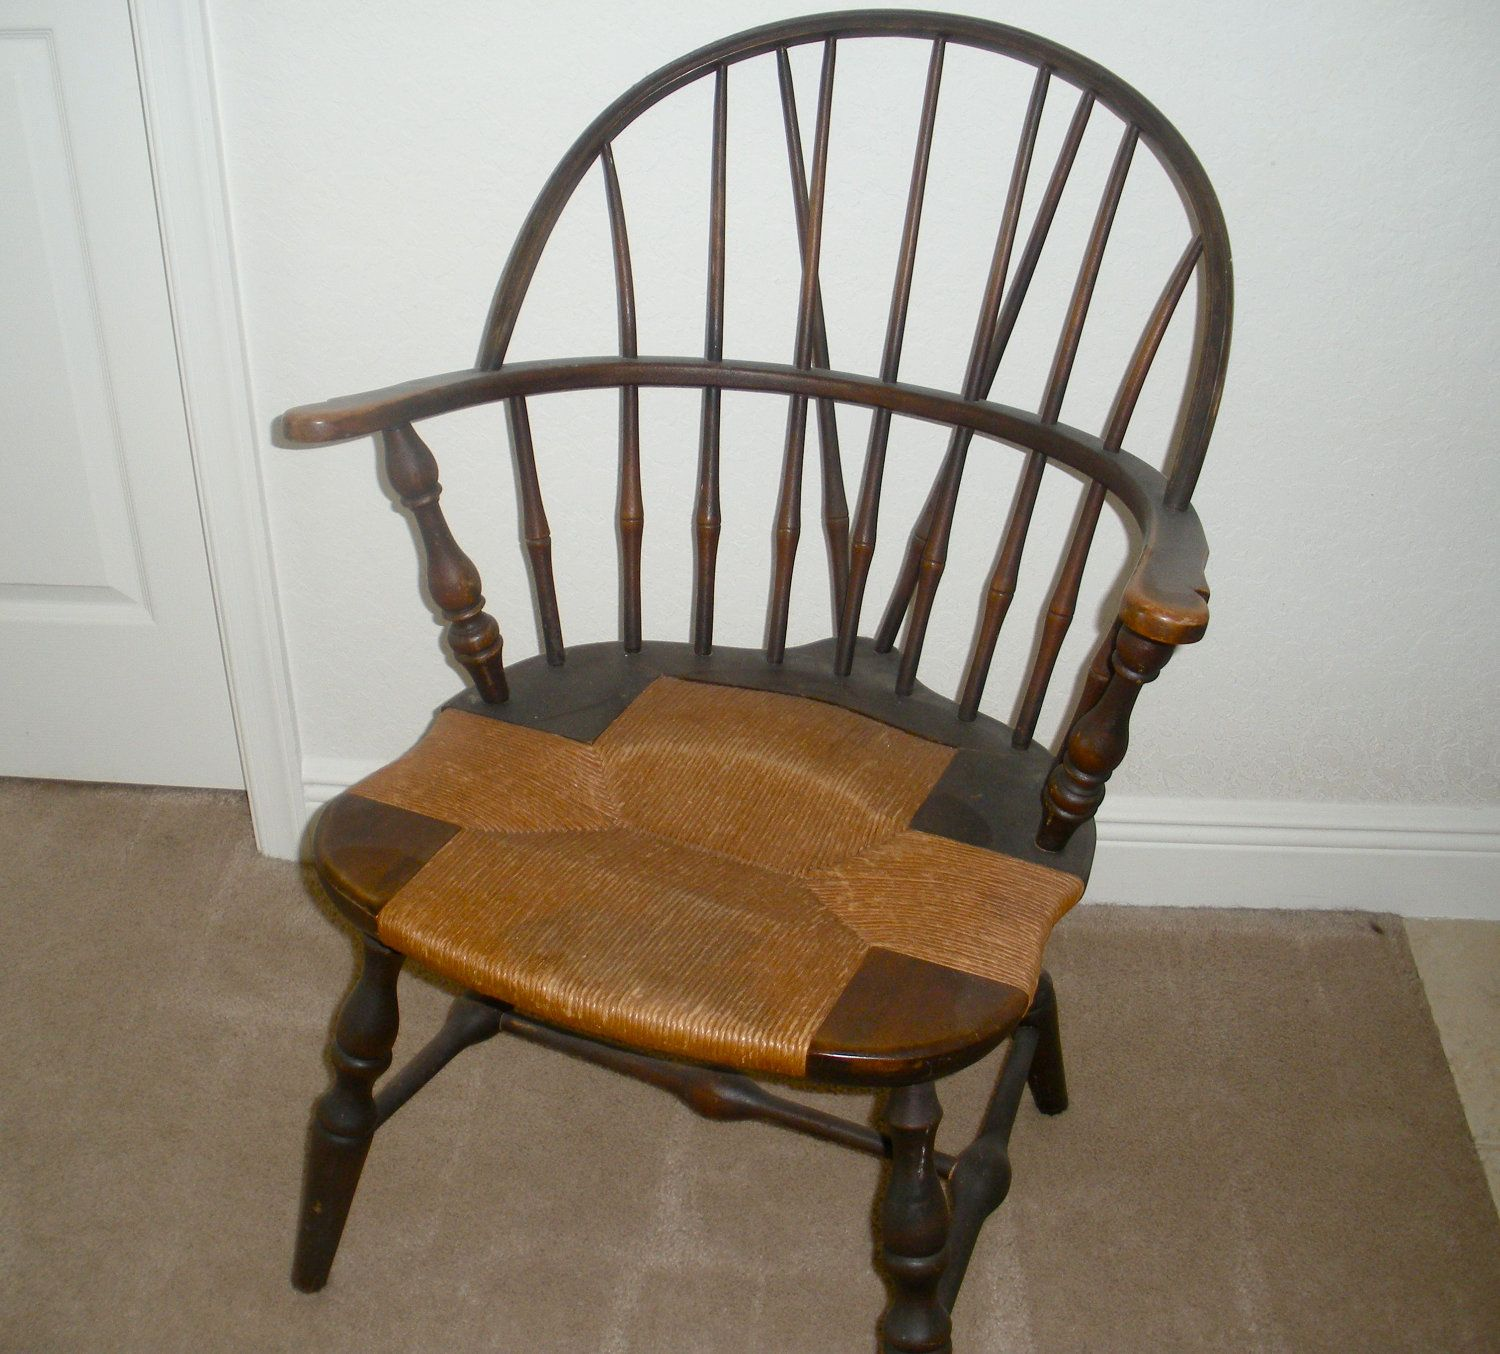 antique windsor office chair - Office chairs that are best offer the best  style as well as comfort. They should ideally matc - Rush Seat Windsor Windsor Pinterest Windsor F.C.